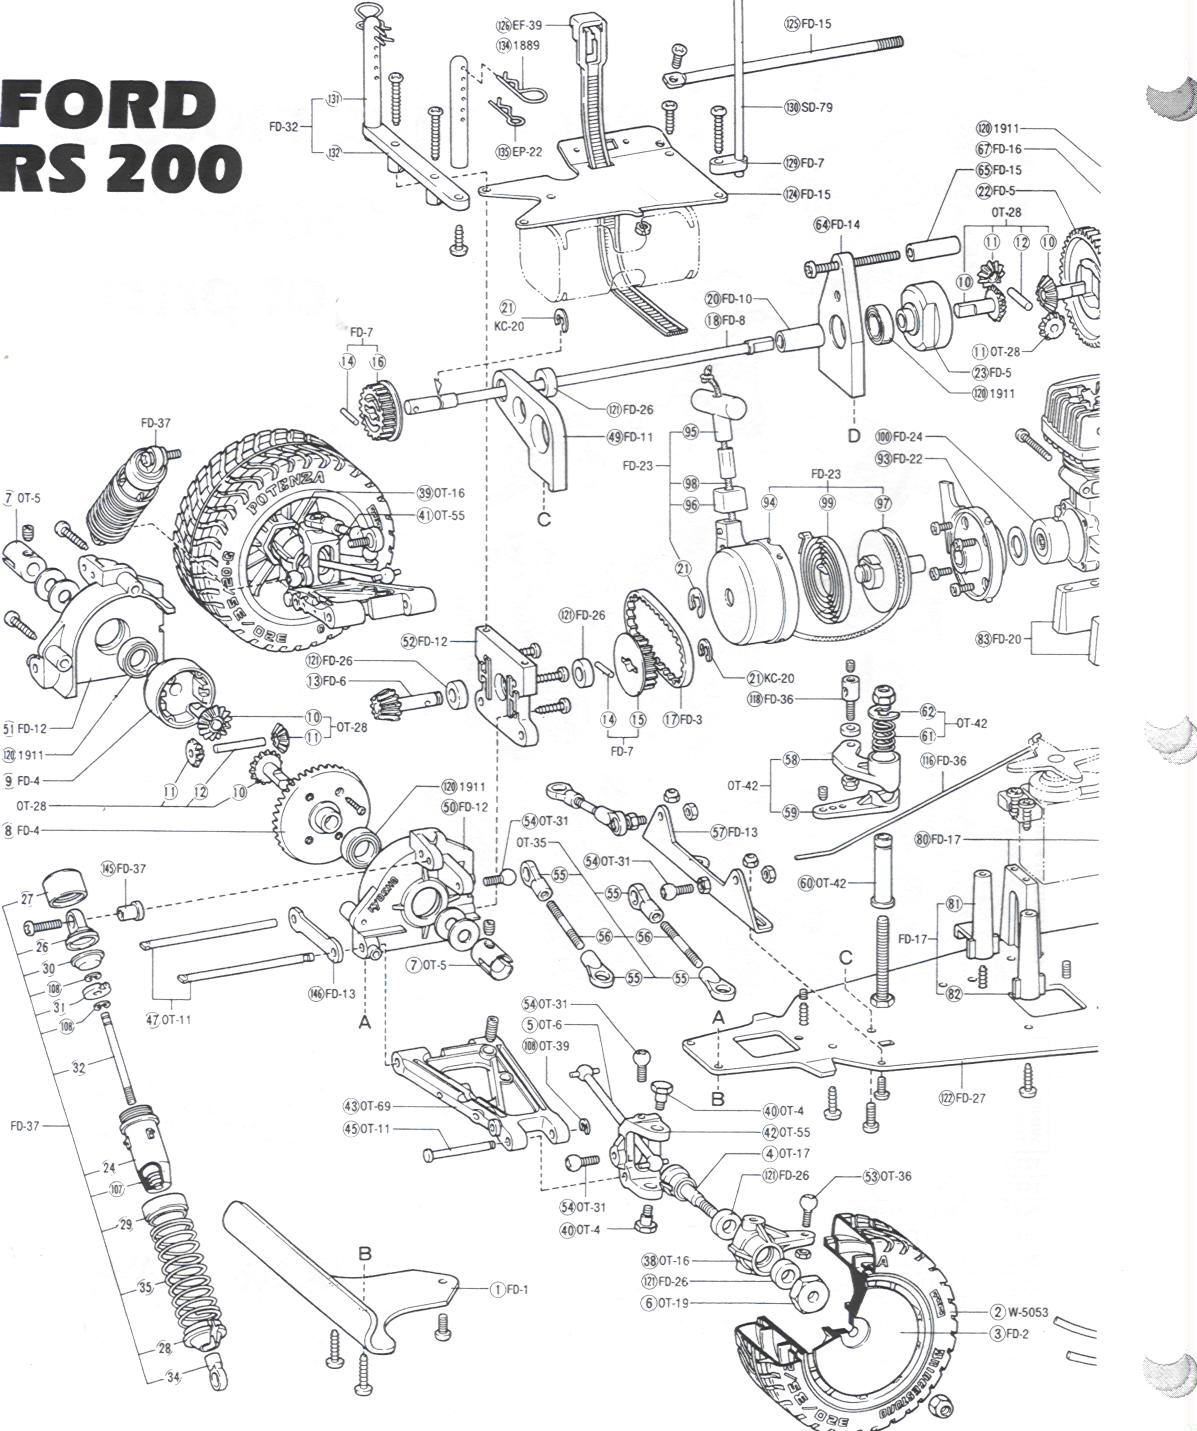 Kyosho KYOC0510 3013 Ford RS 200 w/OS .10 Page